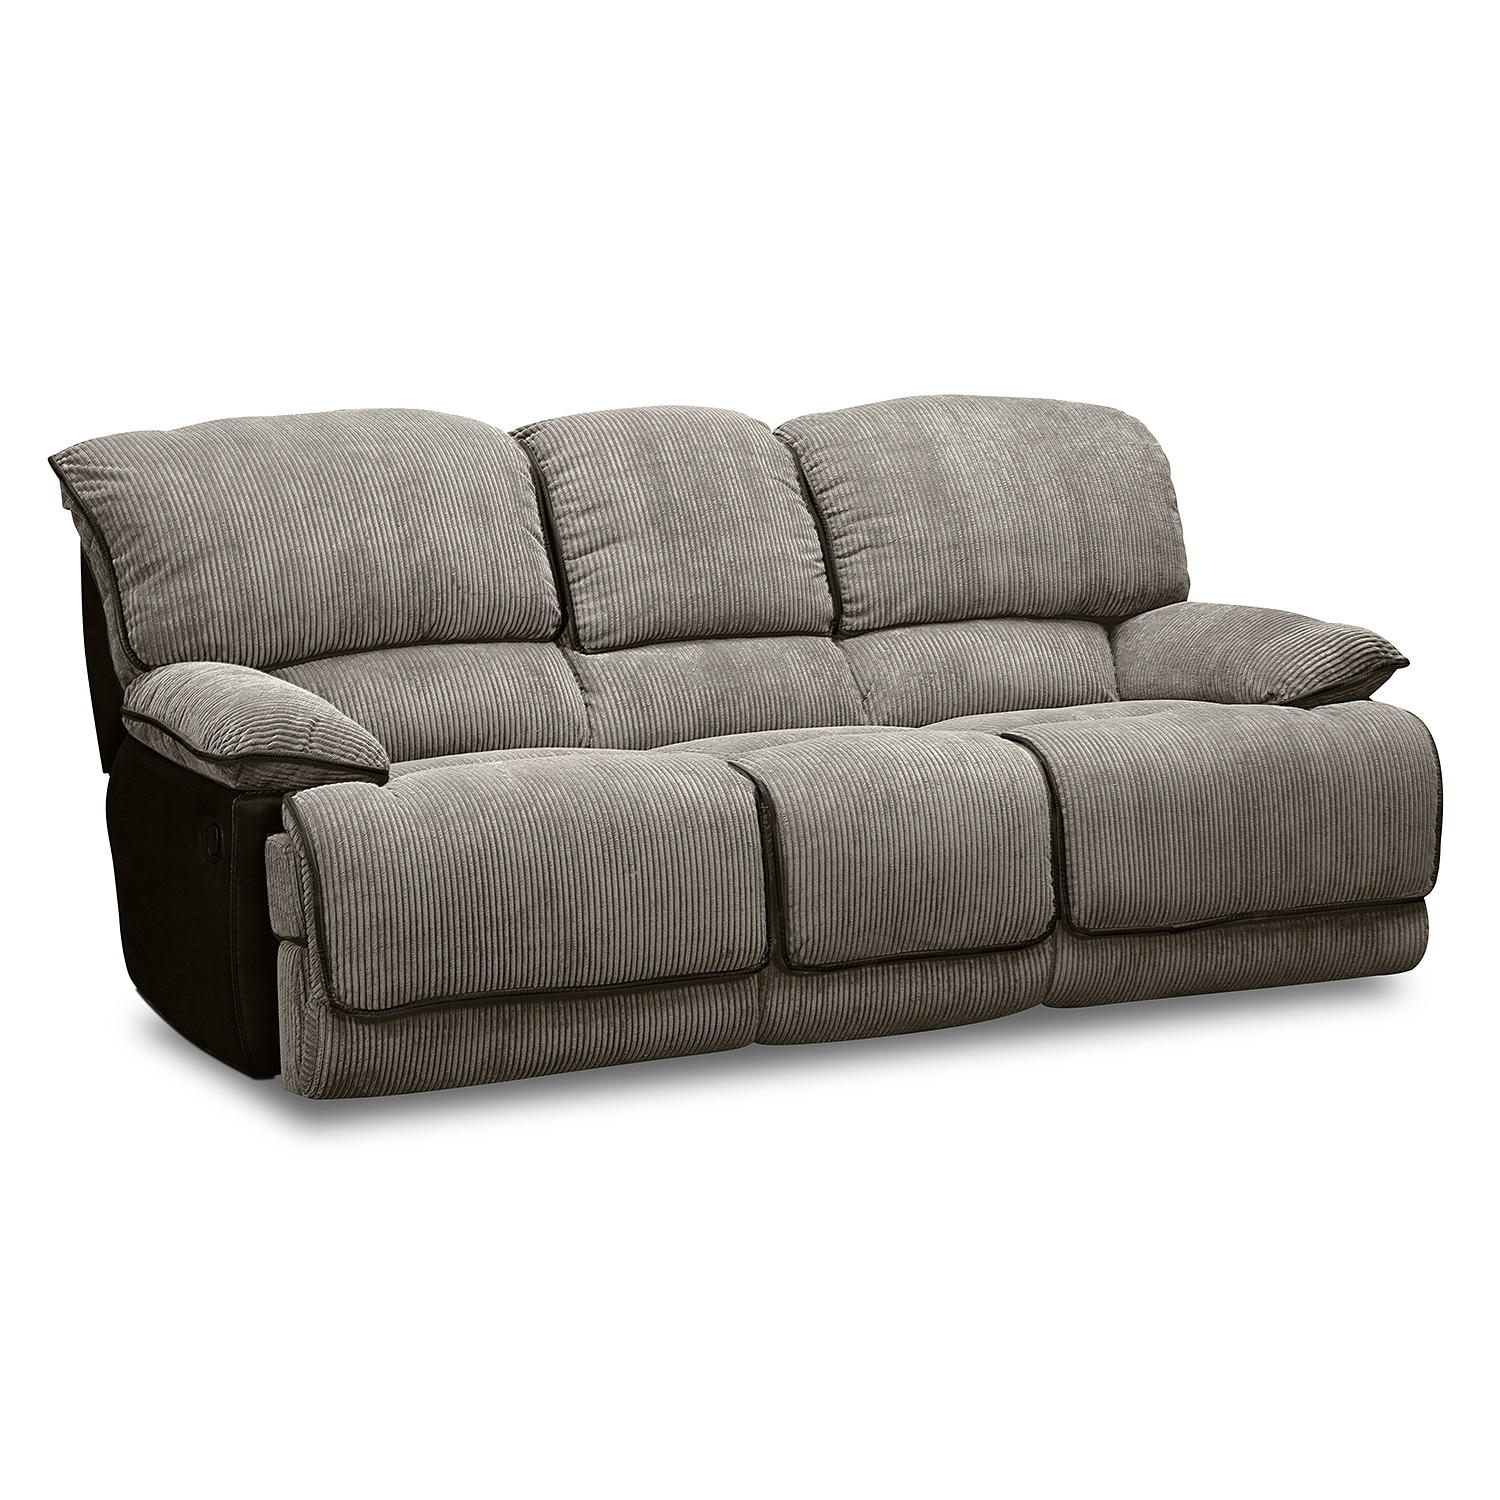 Laguna dual reclining sofa steel value city furniture for Furniture sofas and couches